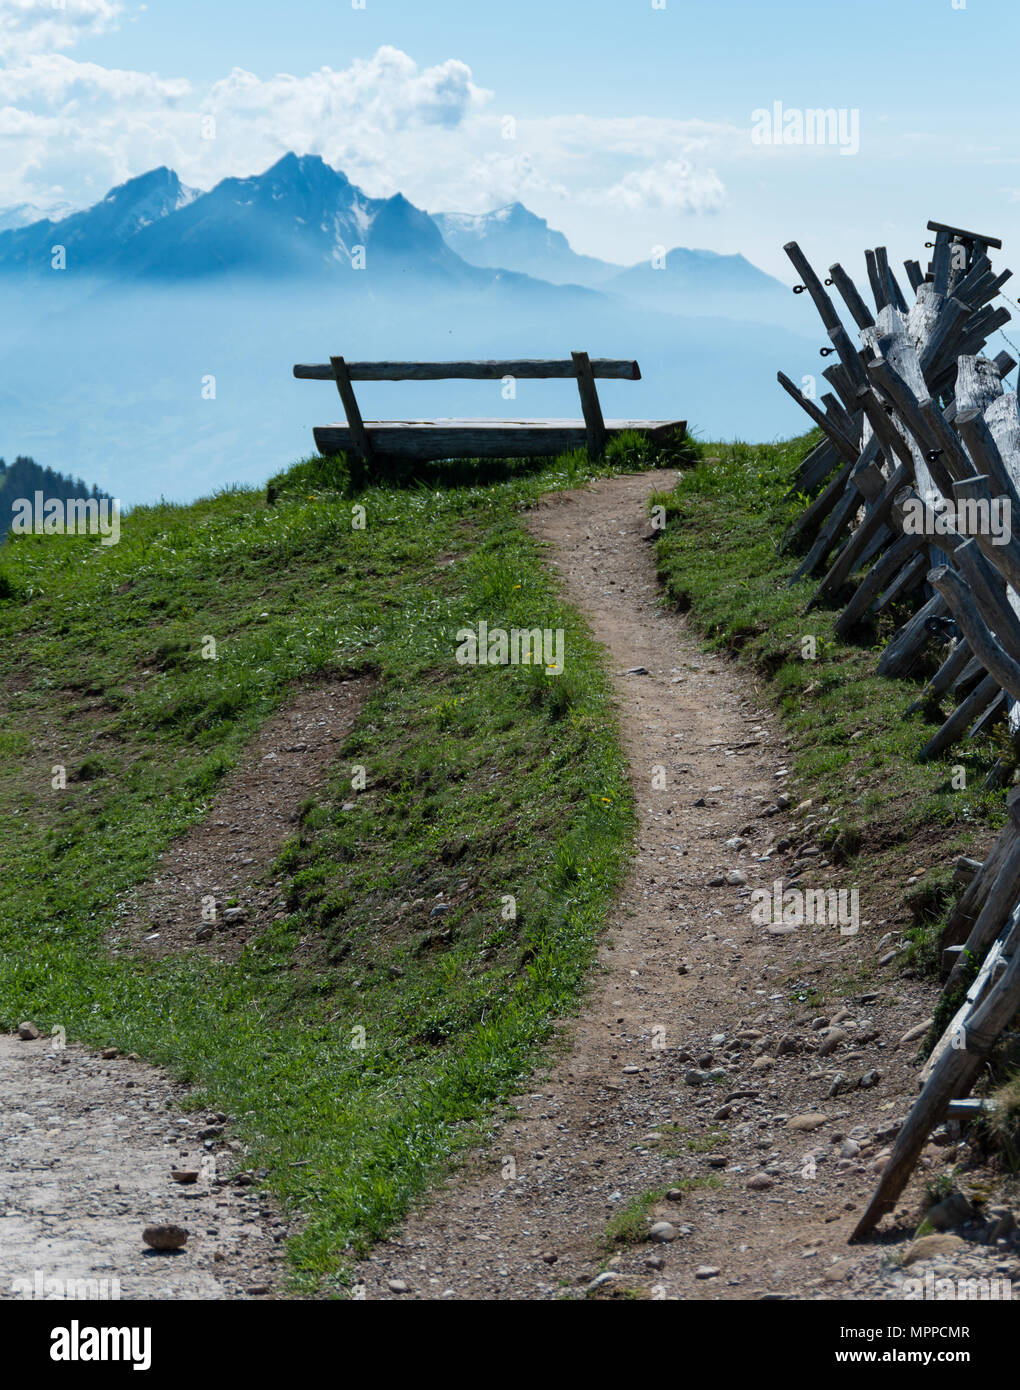 Wooden bench on mount rigi facing mount pilatus lead to by a dirt path with a wooden barricade fence next to it - Stock Image